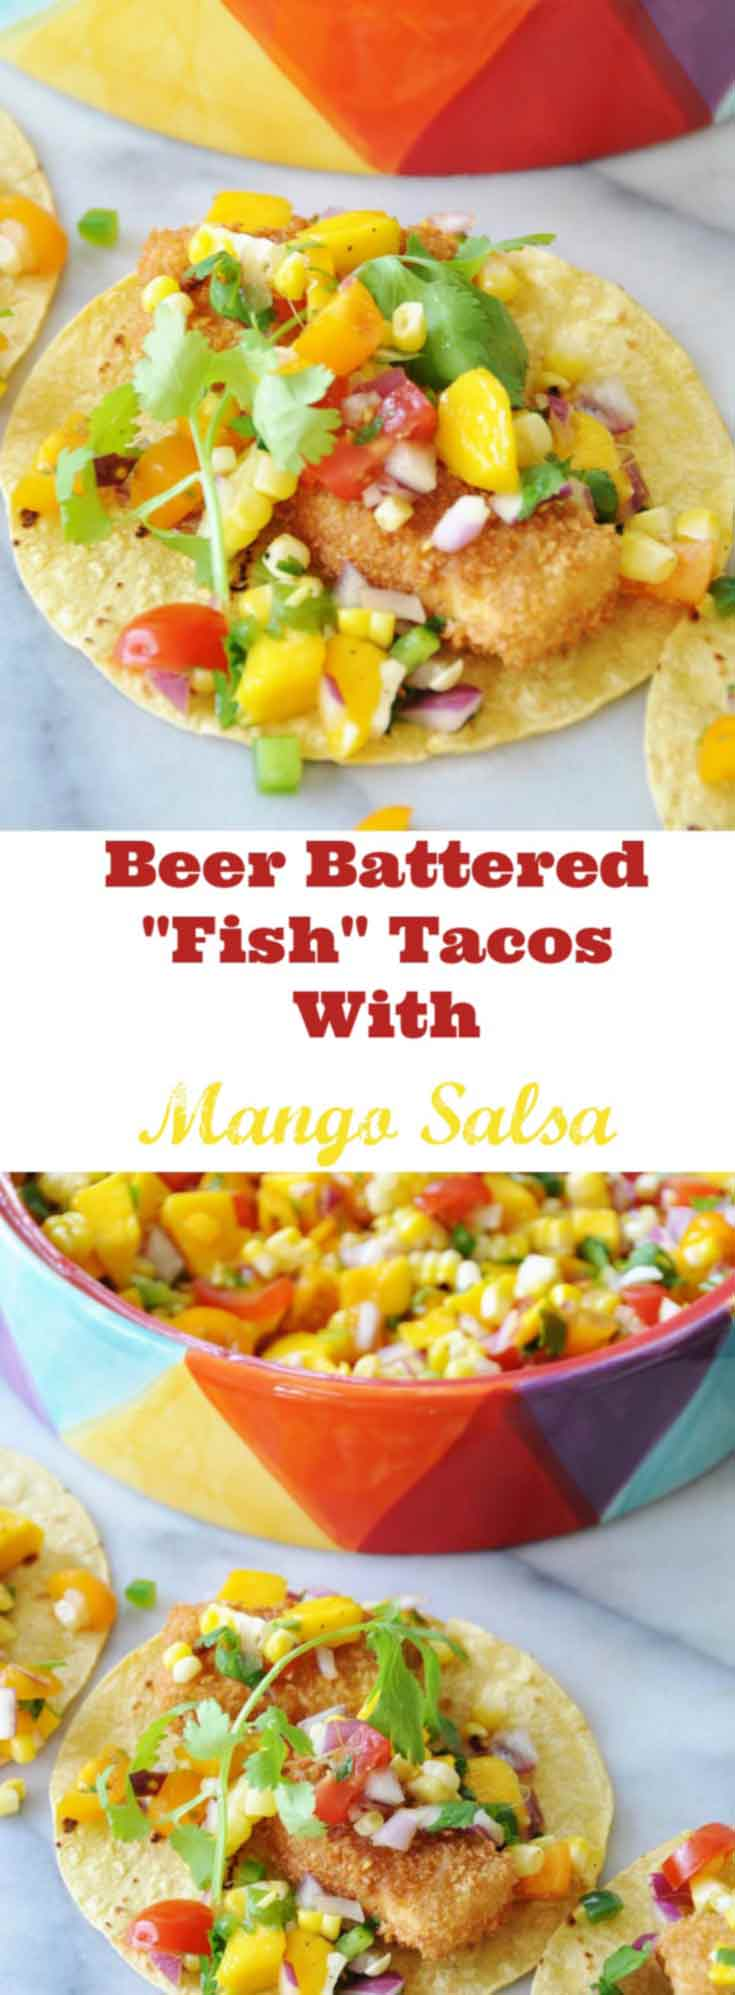 Beer battered fish tacos with mango salsa veganosity for Beer battered fish tacos recipe